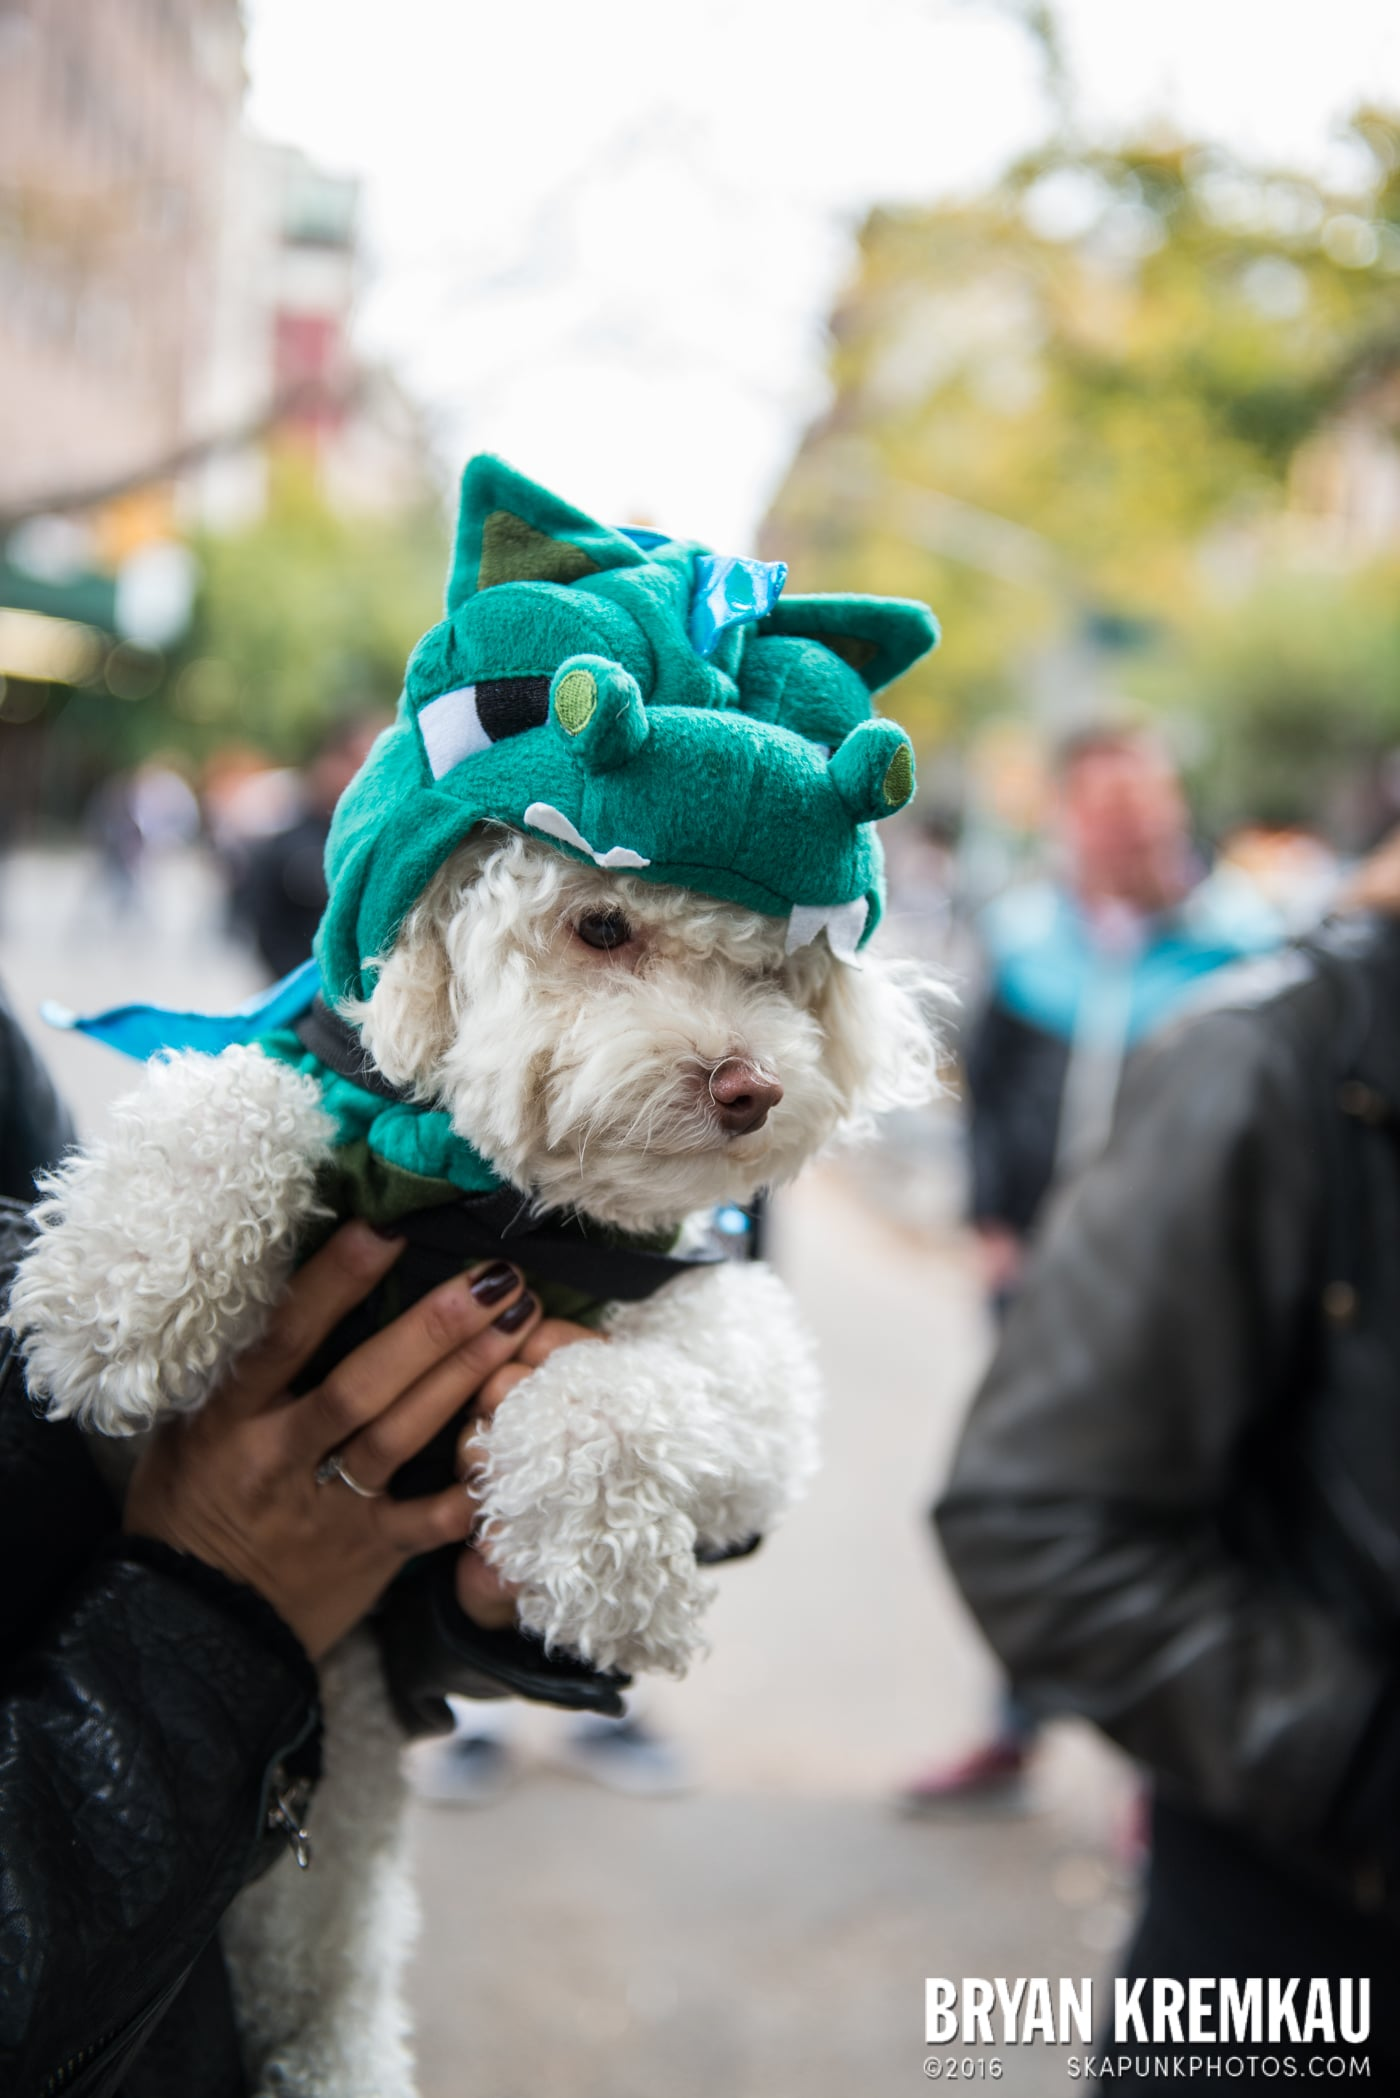 Tompkins Square Halloween Dog Parade 2015 @ Tompkins Square Park, NYC – 10.24.15 (34)